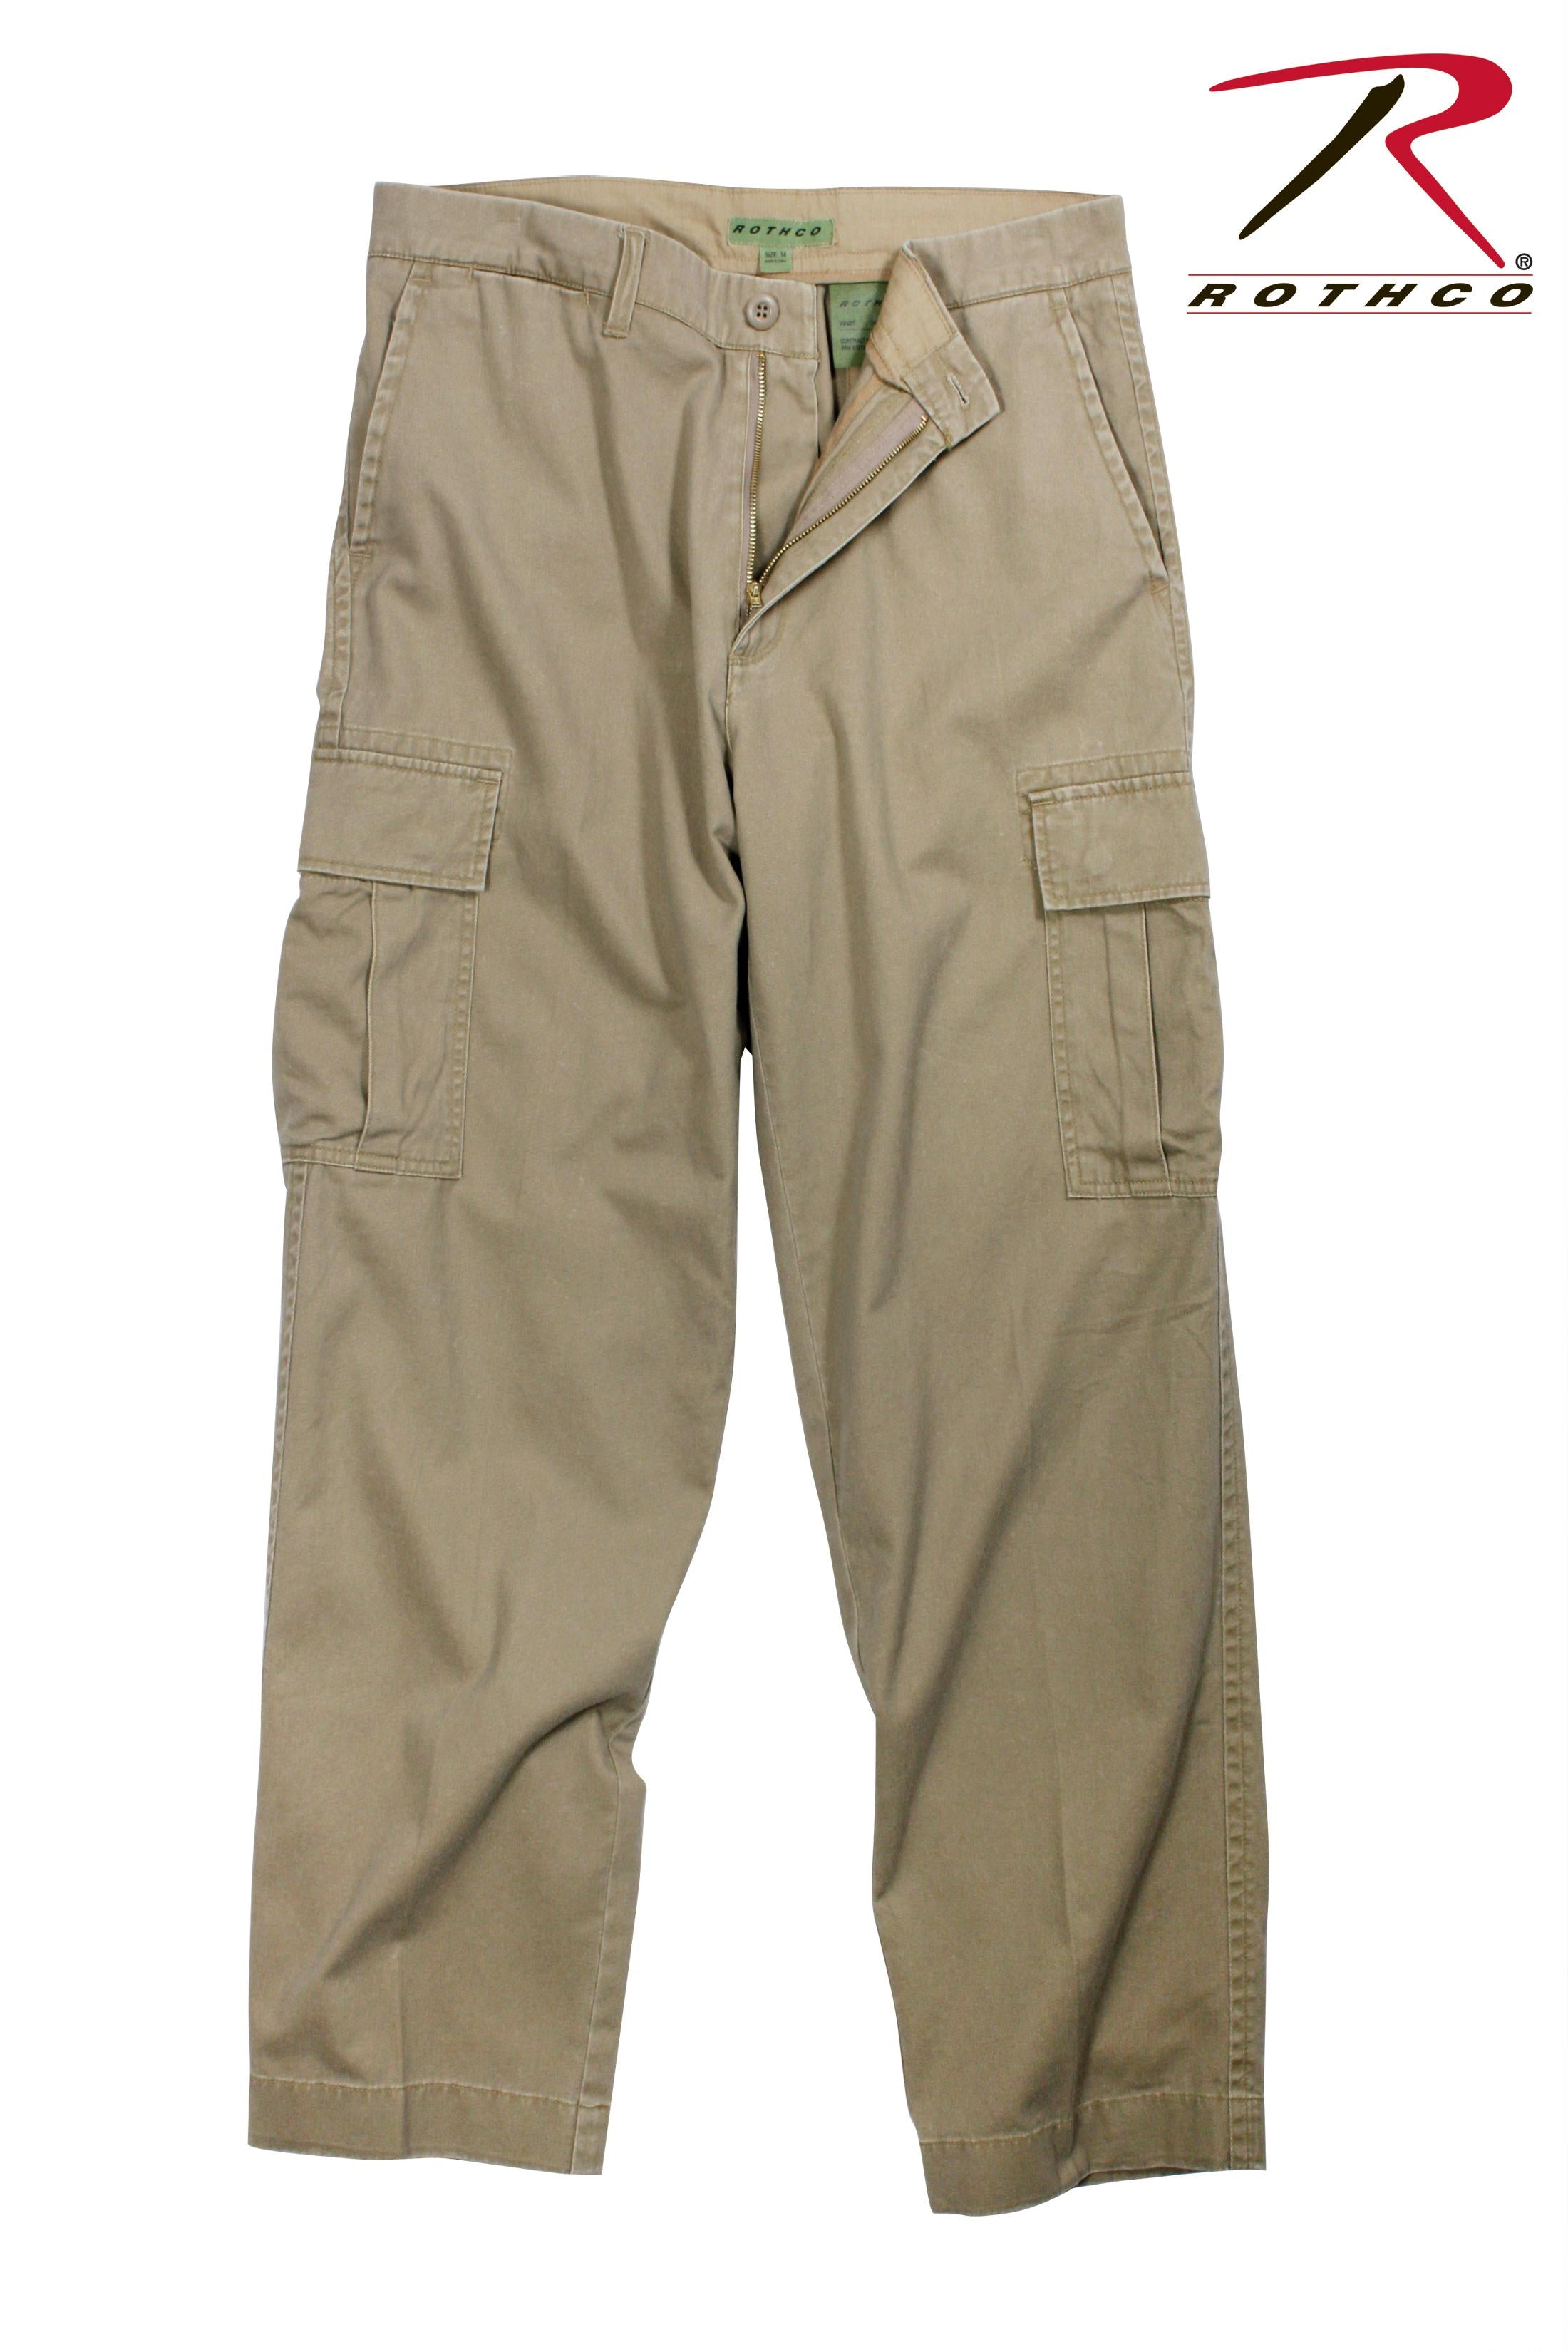 Rothco Vintage 6-Pocket Flat Front Fatigue Pants - Khaki / 34